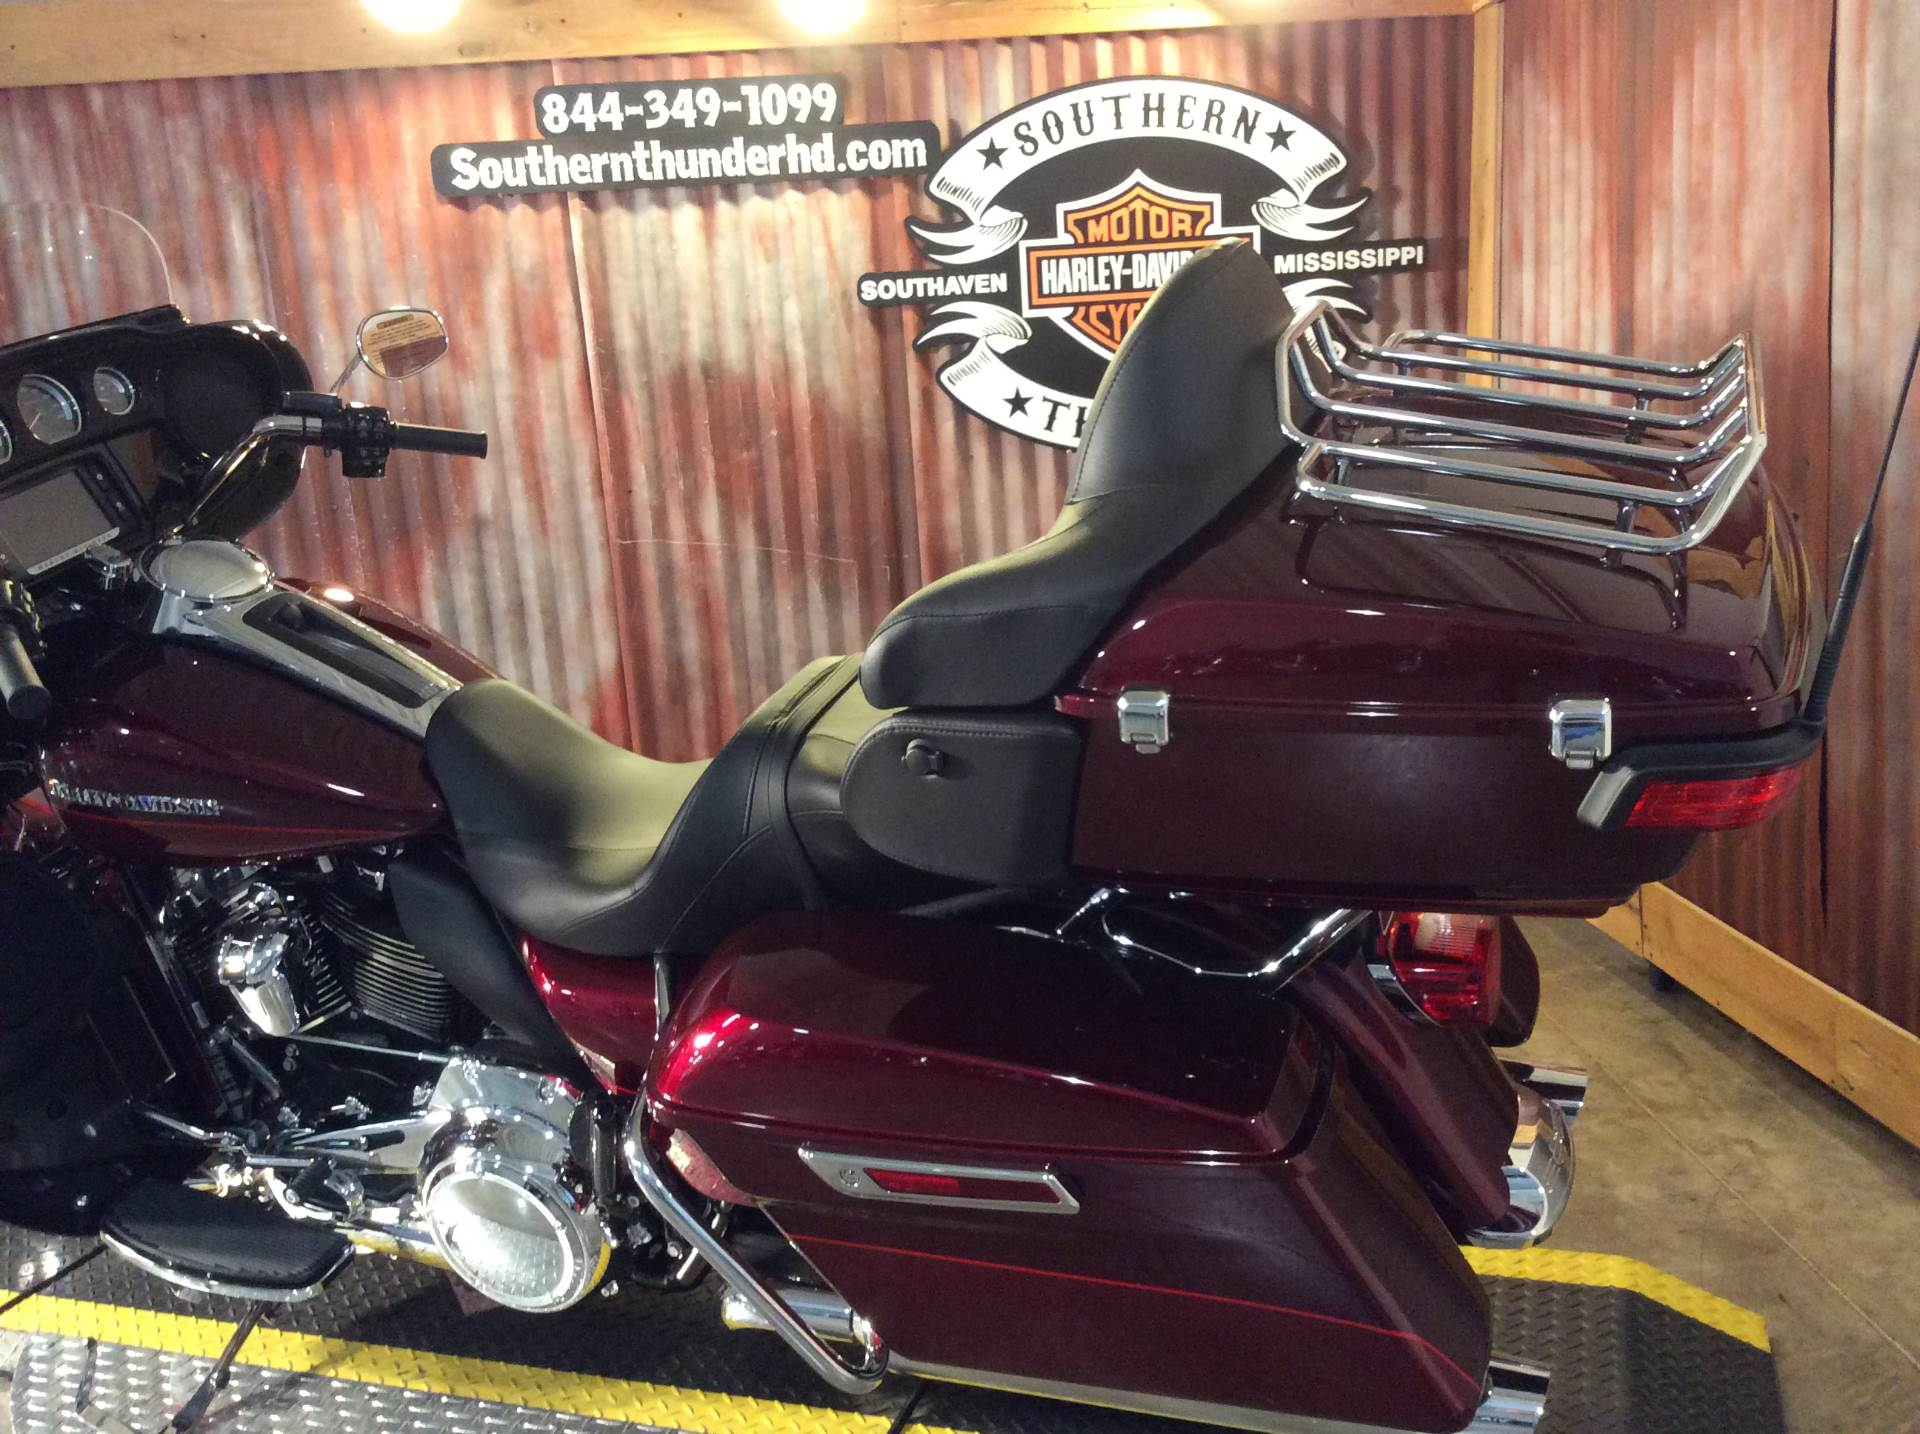 2017 Harley-Davidson Ultra Limited Low in Southaven, Mississippi